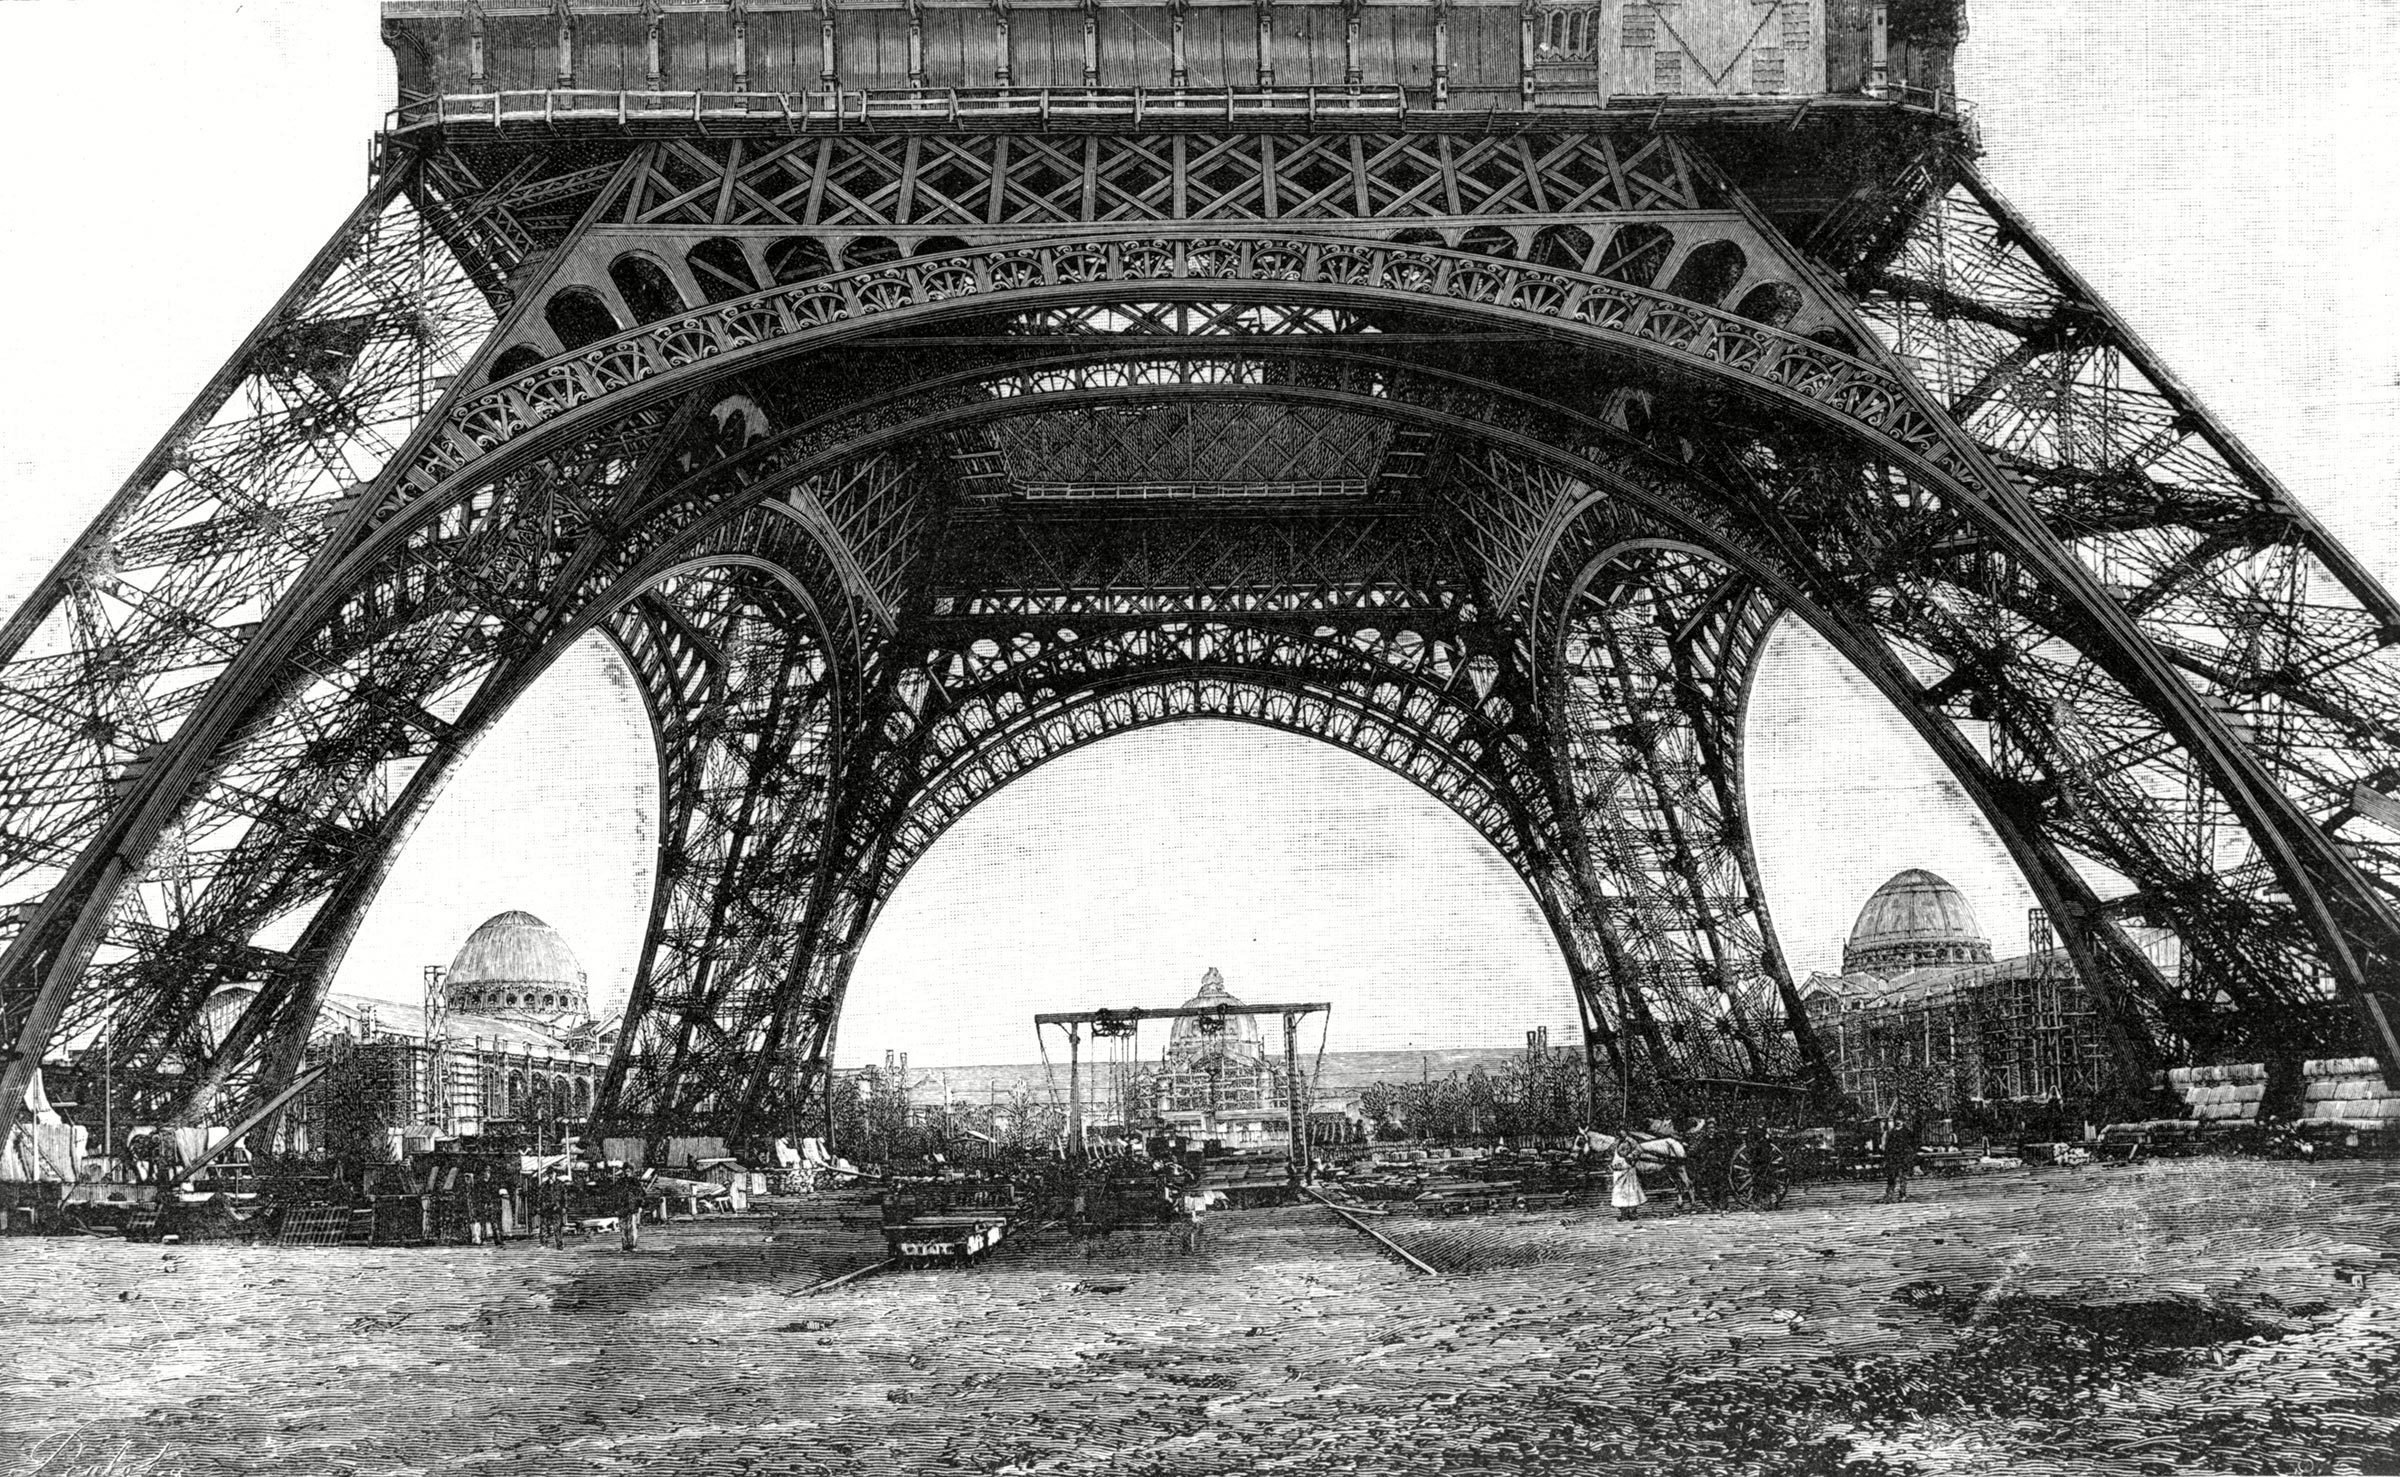 Paris, France - Tour Eiffel, Construction Work, 1889